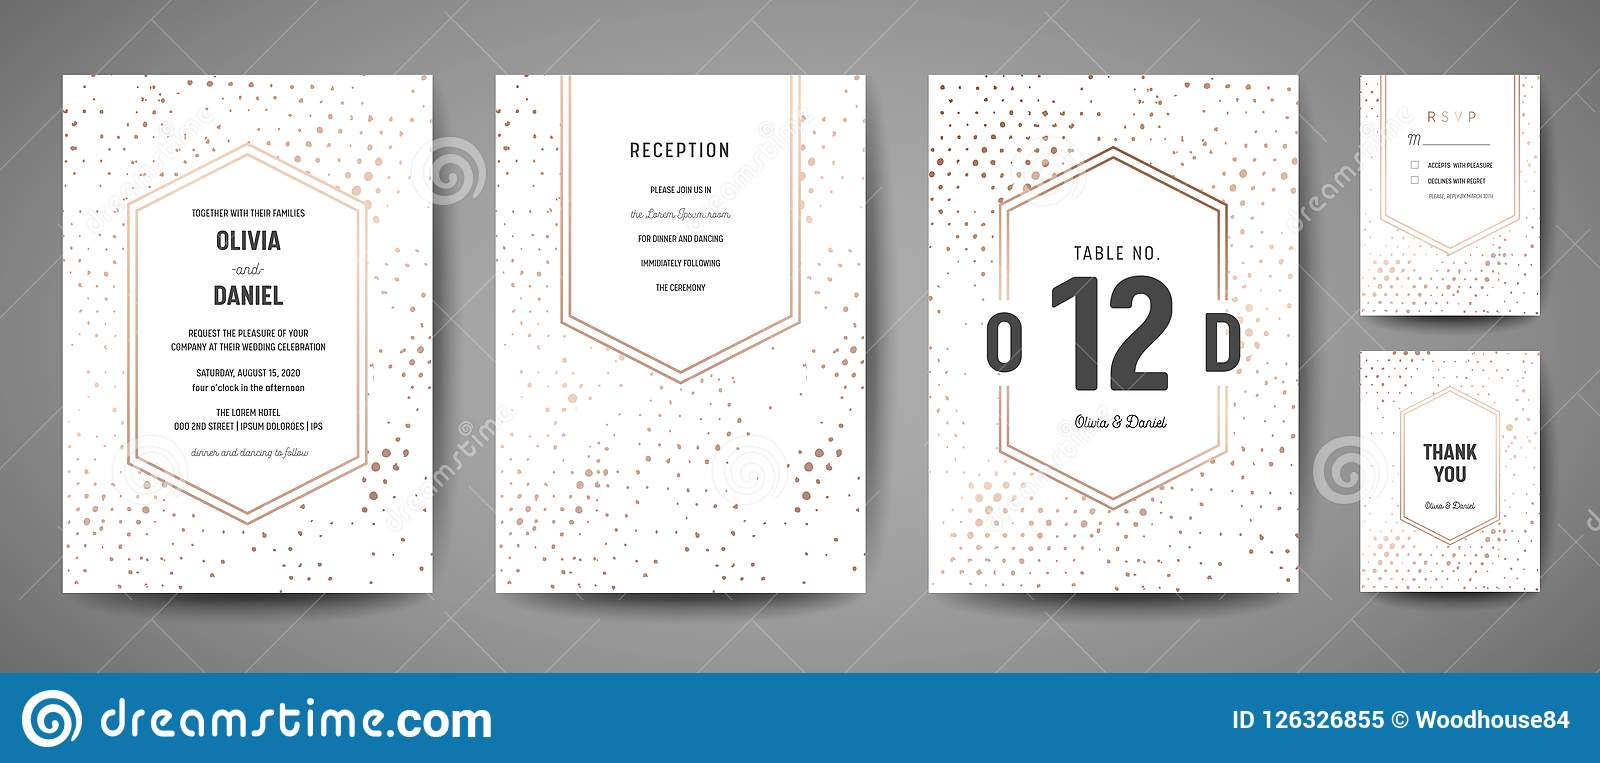 Luxury Wedding Save the Date, Invitation Cards Collection with Gold Foil Polka Dots and Monogram Logo design template